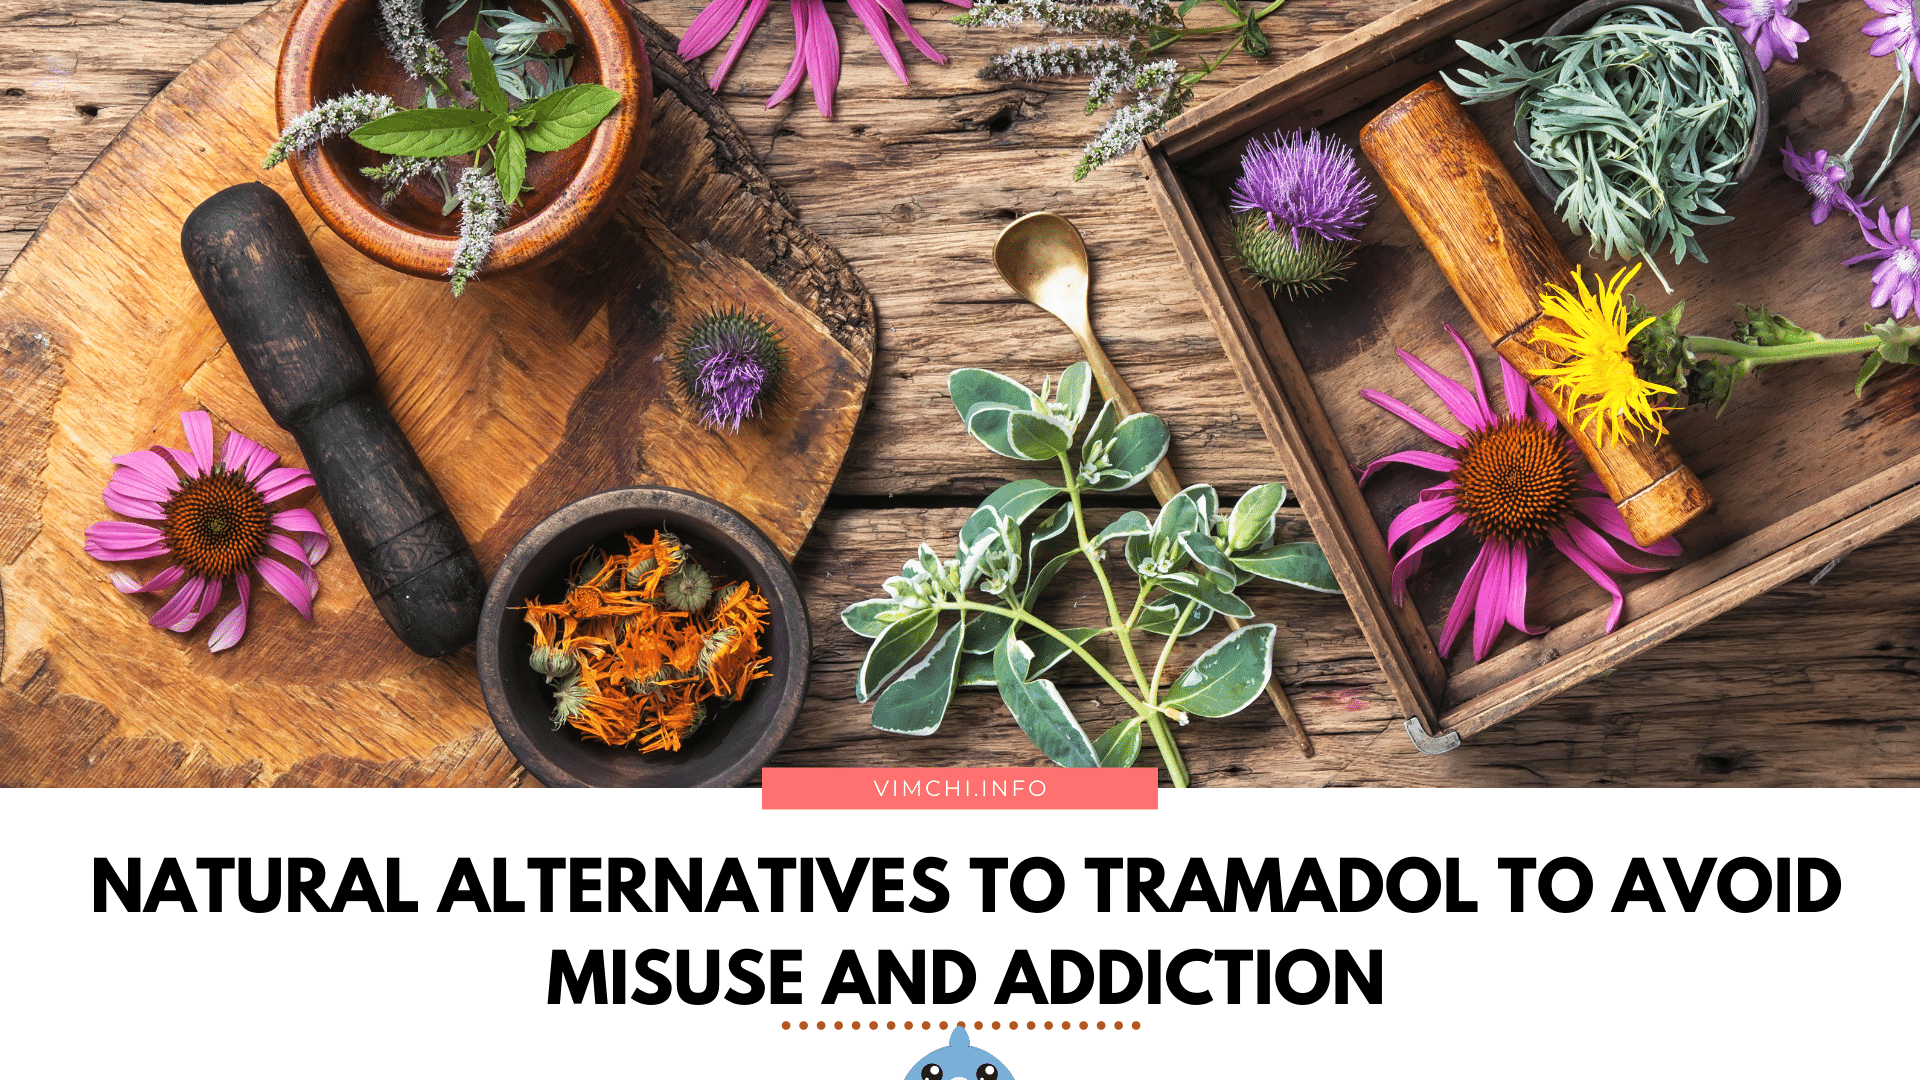 effective natural alternatives to tramadol